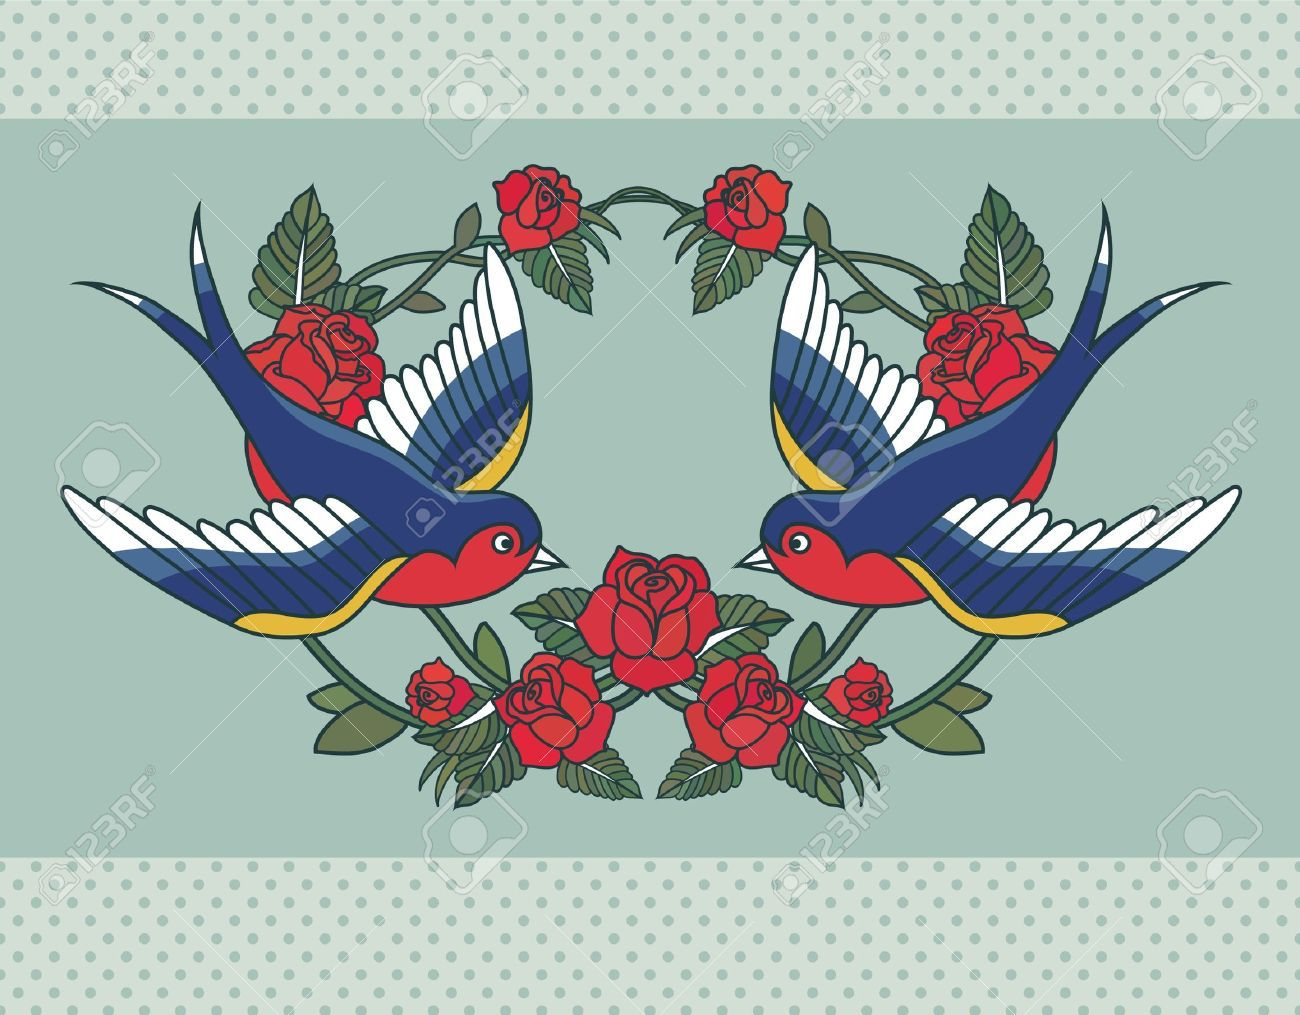 Image from http://previews.123rf.com/images/sntpzh/sntpzh1308/sntpzh130800090/21447883-Old-school-frame-with-roses-and-birds-Stock-Vector-tattoo-rose-swallow.jpg.